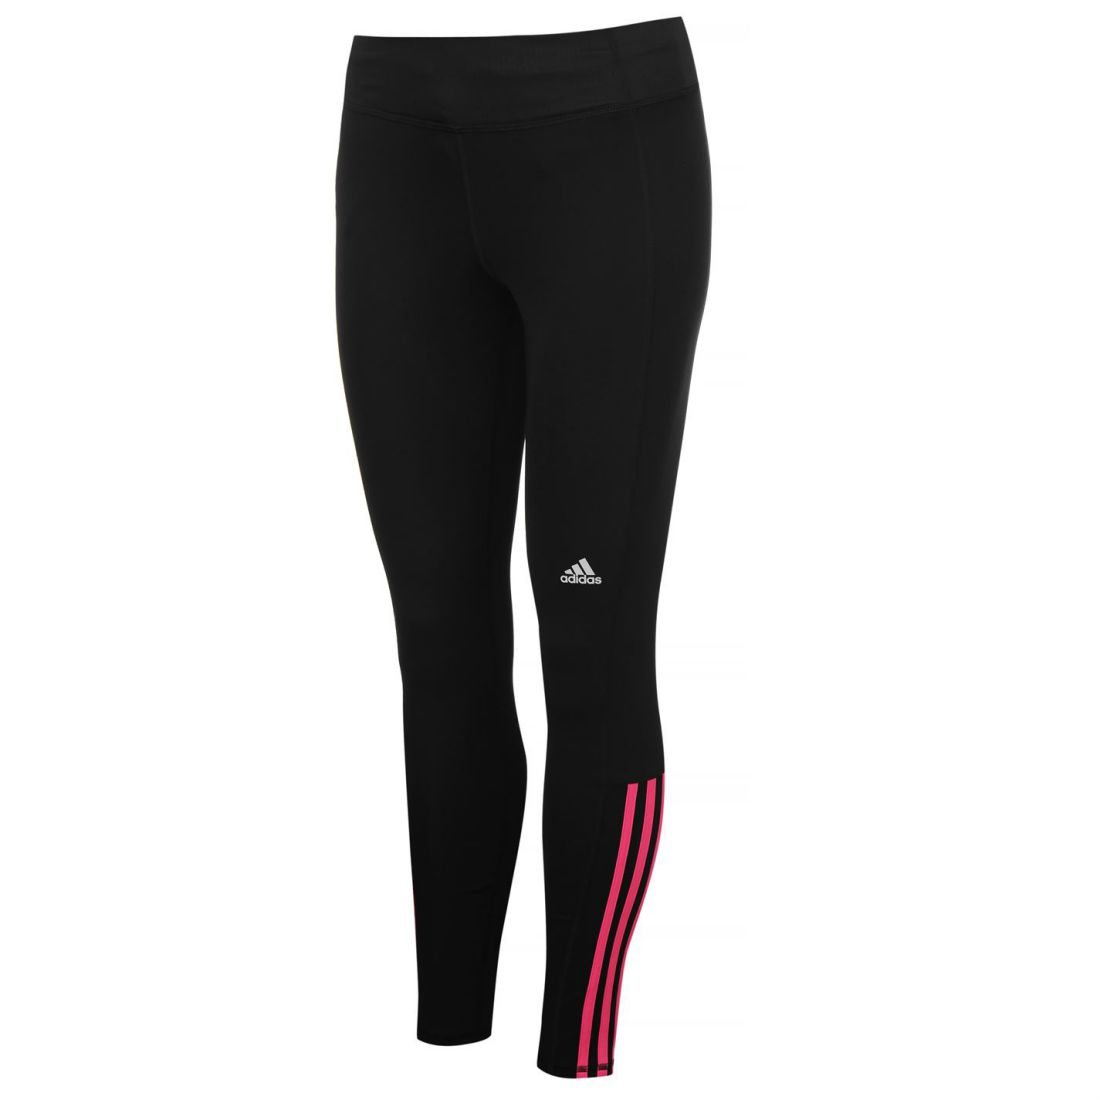 e0e4912e6603 Image is loading adidas-Womens-Ladies-Quest-Long-Running-Tights-Pants-